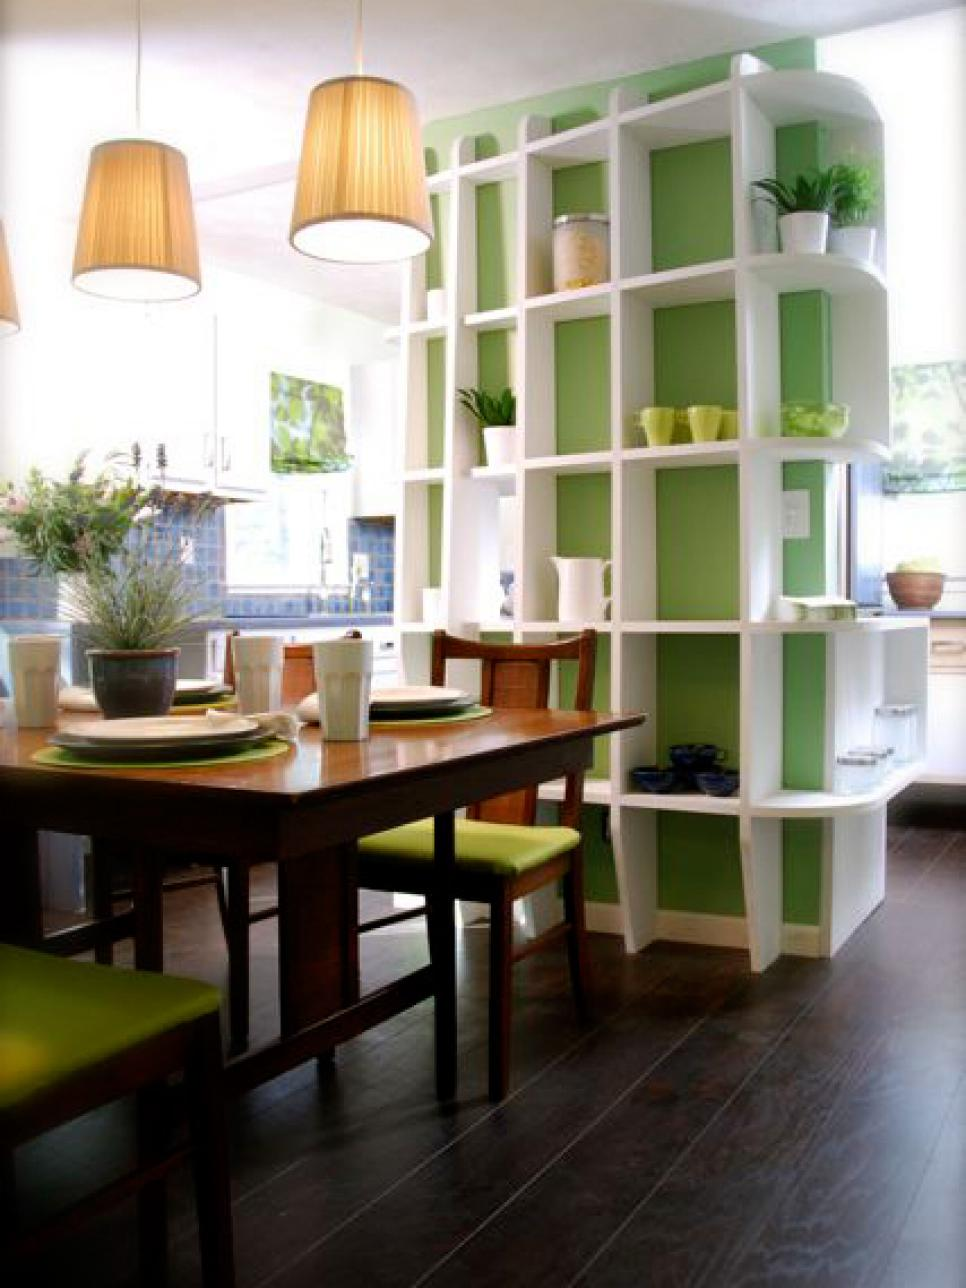 Pictures of 10 Smart Design Ideas for Small Spaces | HGTV home interior design ideas for small spaces